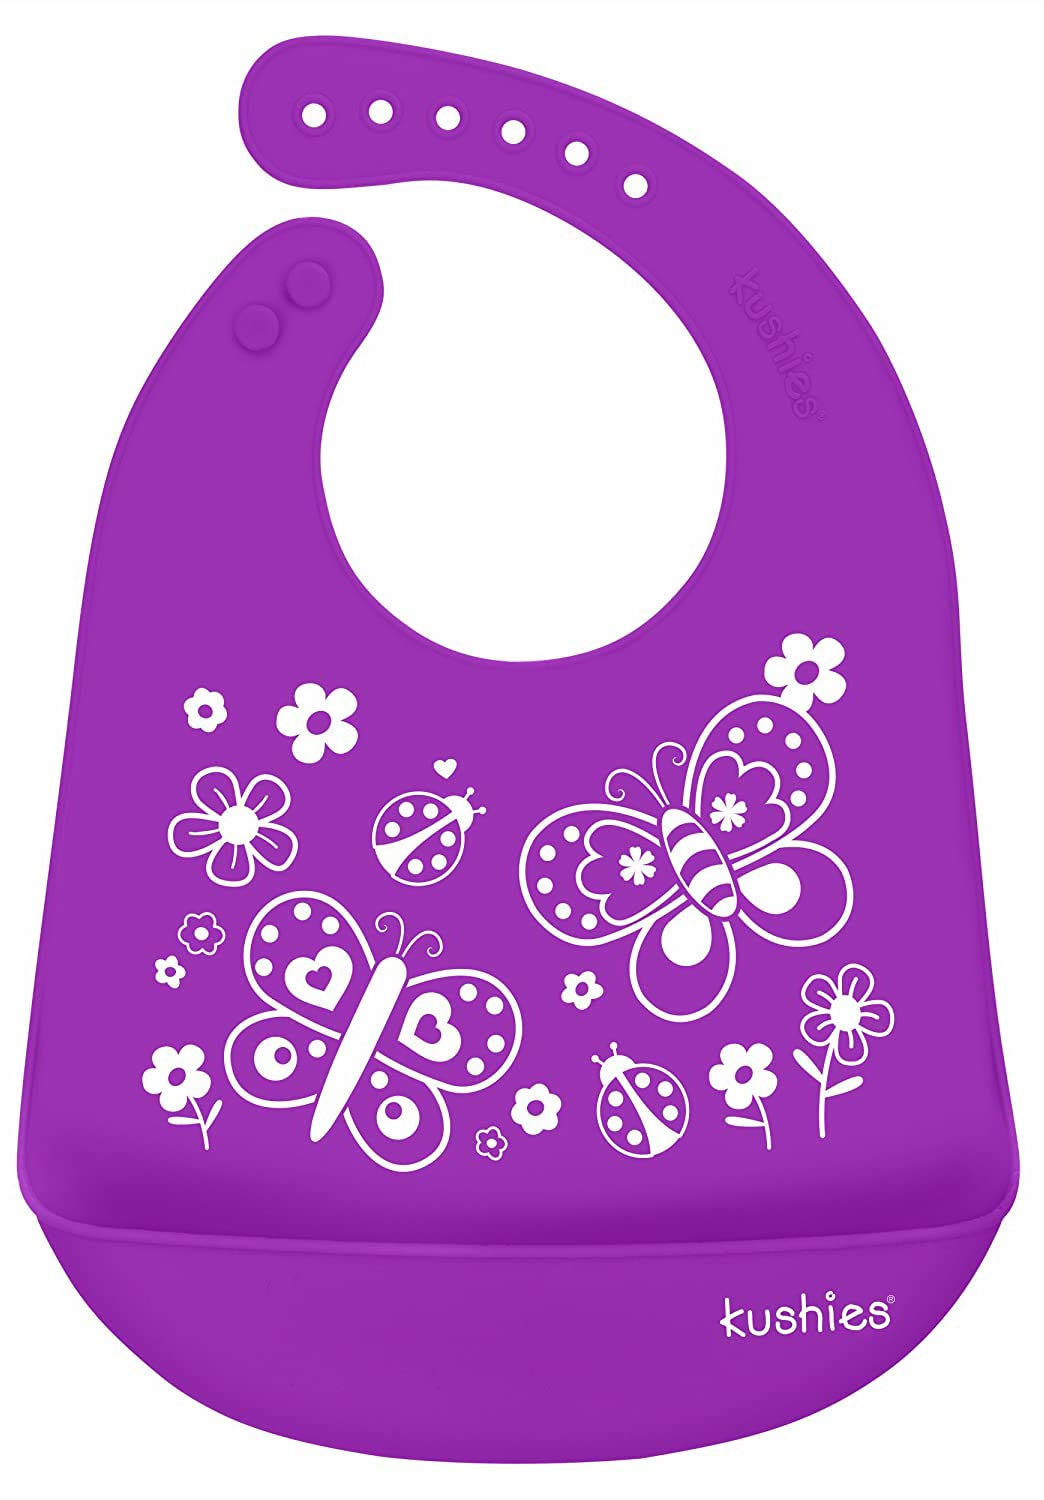 Kushies Silicatch Super Soft Silicone Waterproof Feeding Bib with Catch All/Crumb Catcher, Violet, 6m +